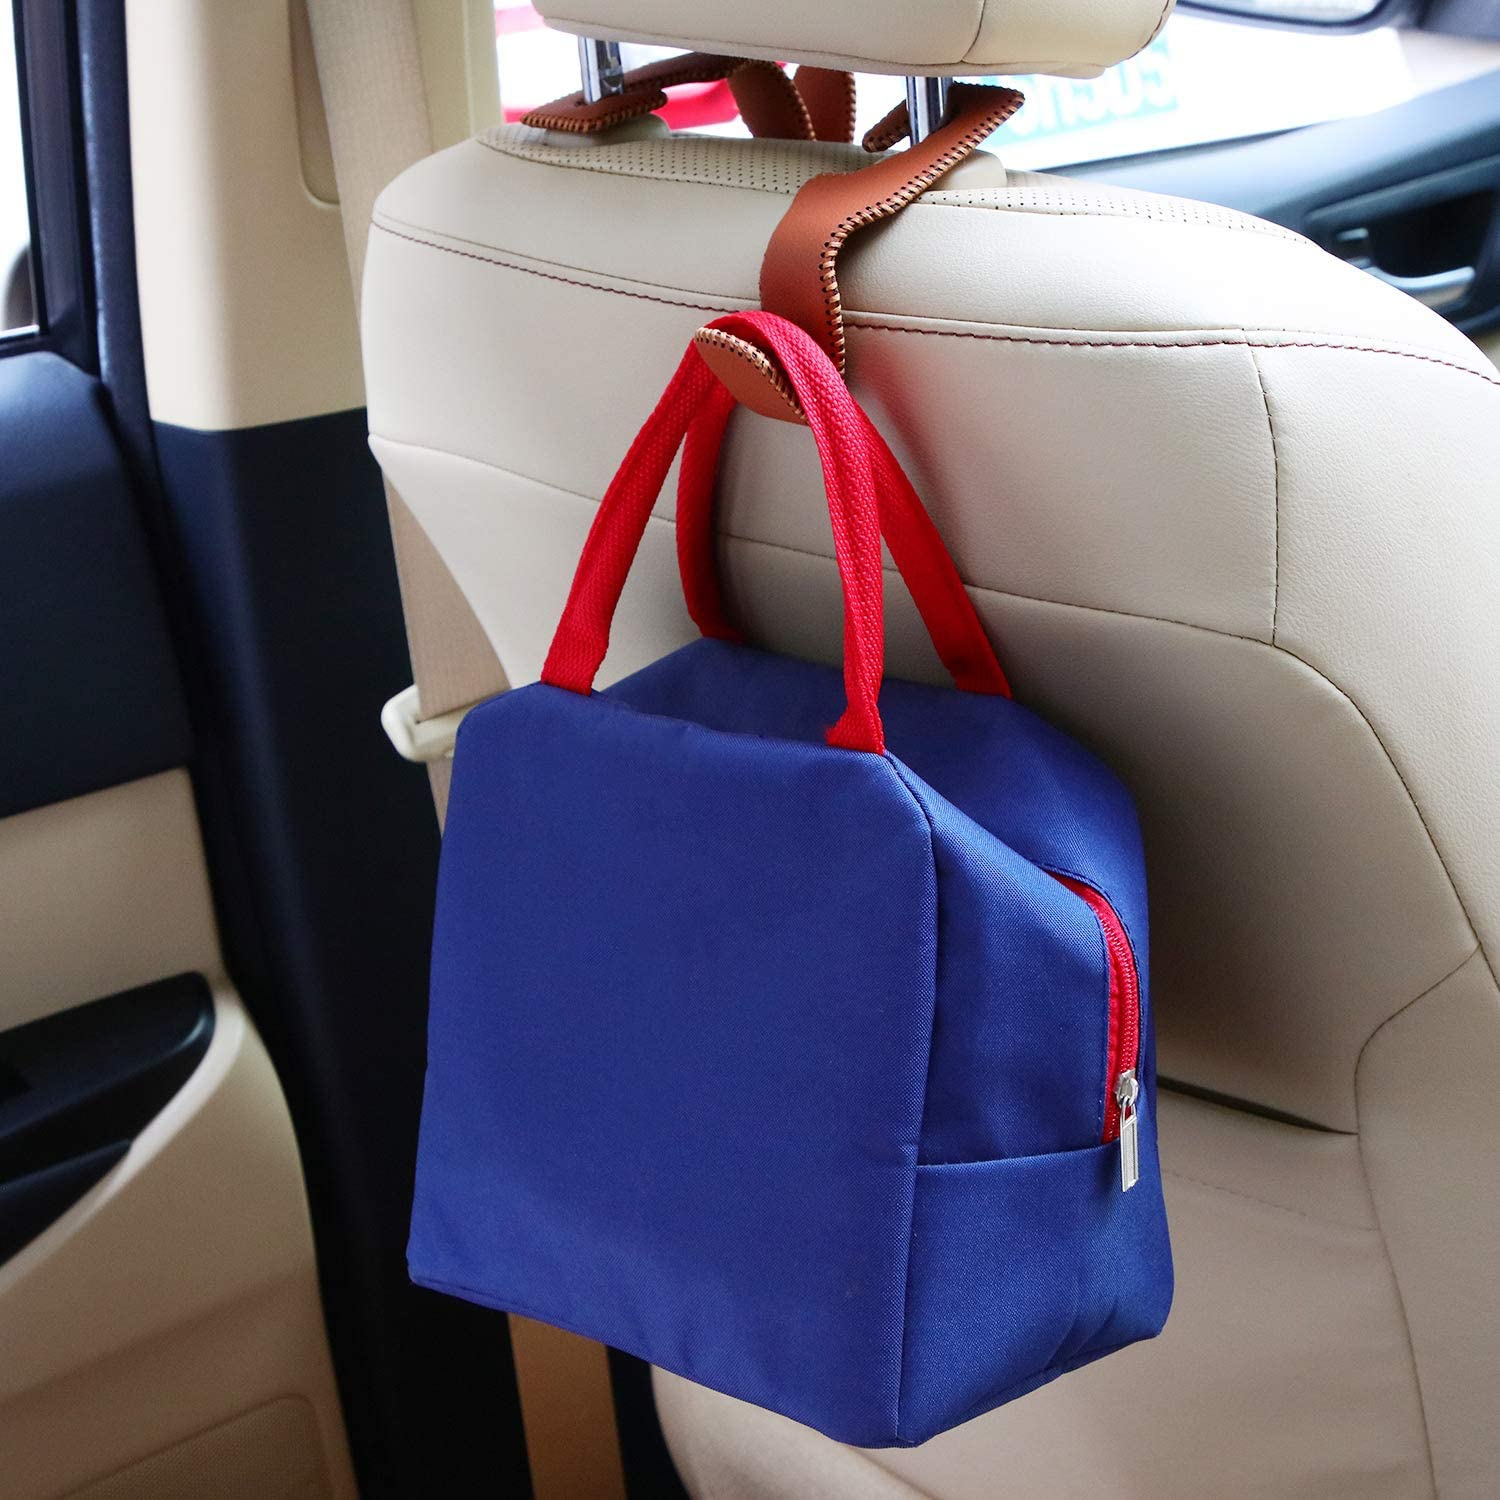 Beige 2 Pieces Car Headrest Hooks Universal Vehicle Back Seat Headrest Hanger Holder Hook Leather Car Seat Hooks for Hanging Purses and Grocery